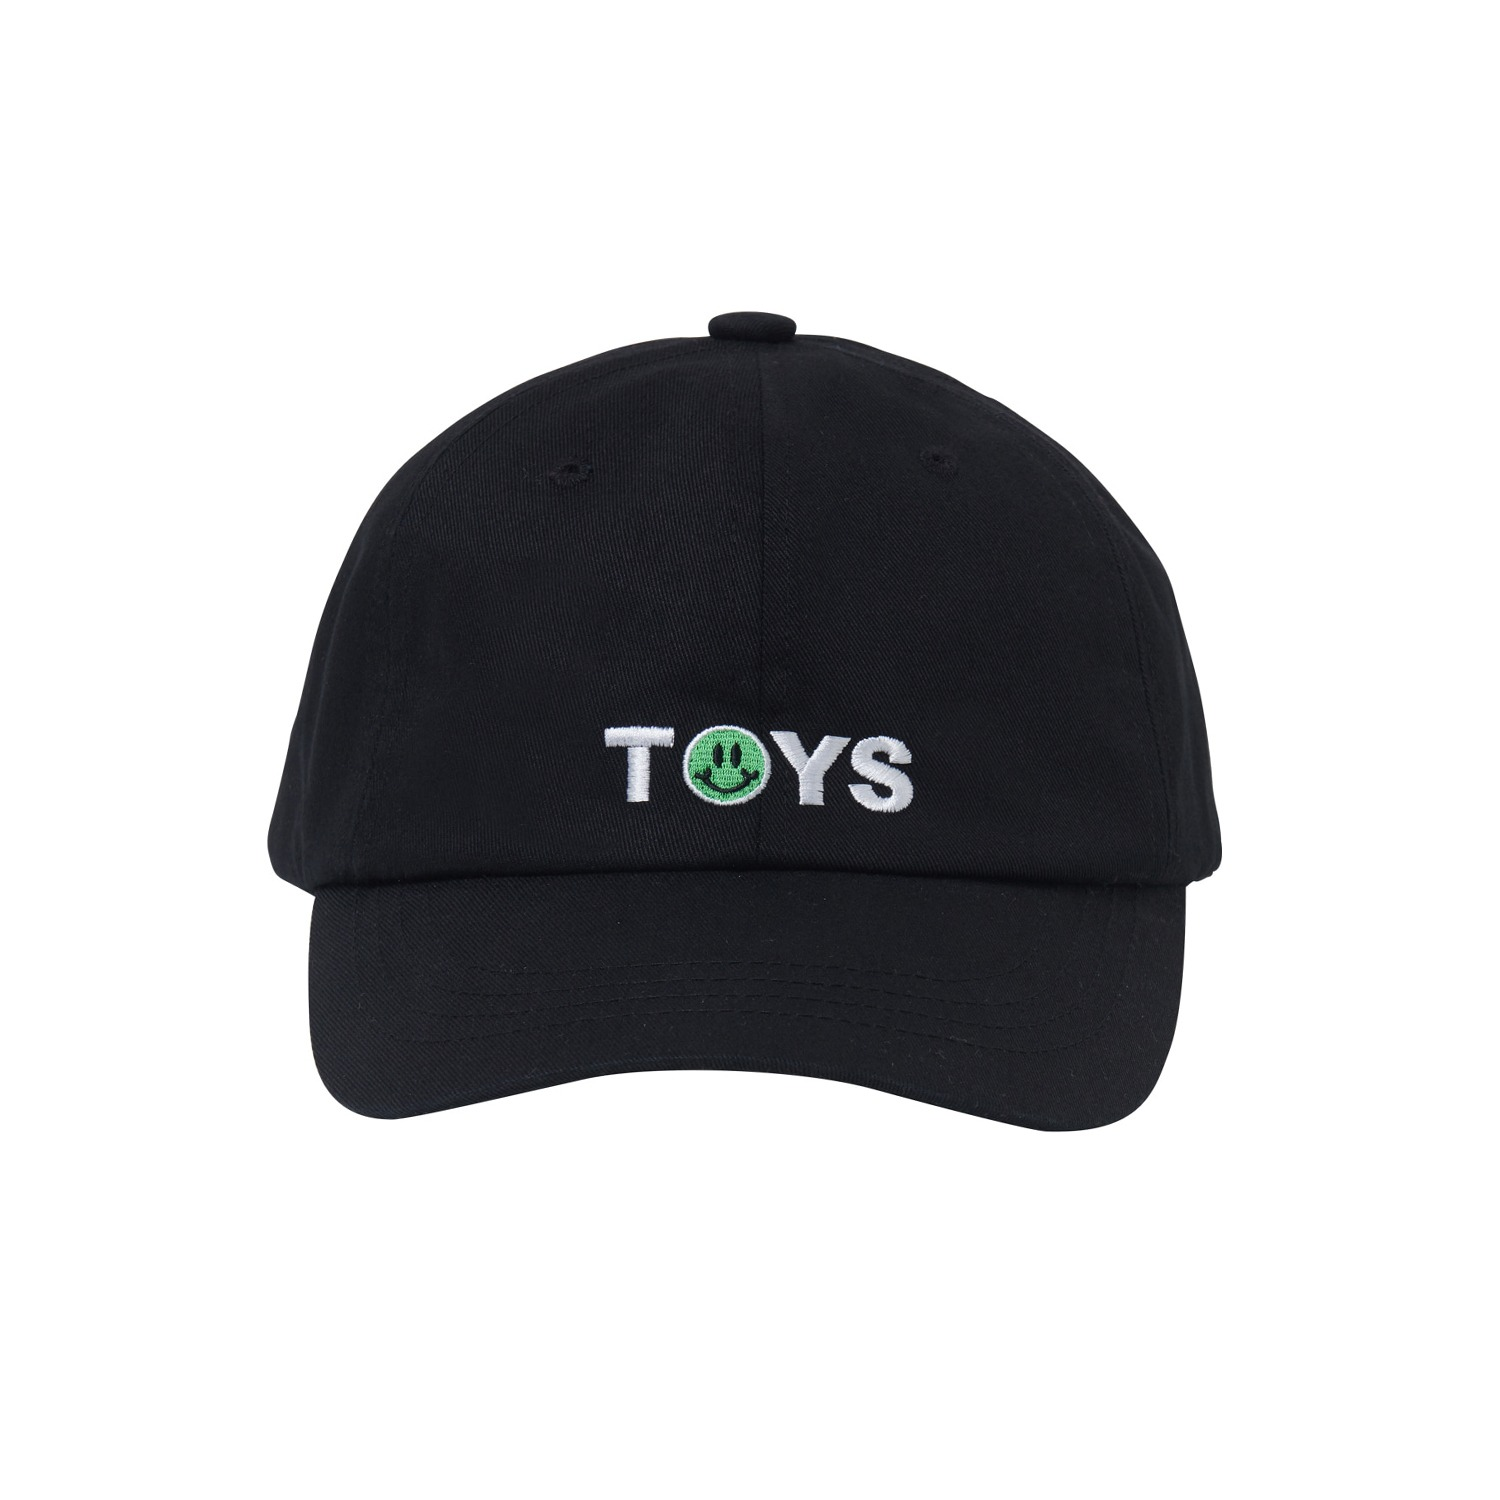 [54% OFF]TOYS BALL CAP(BLACK)